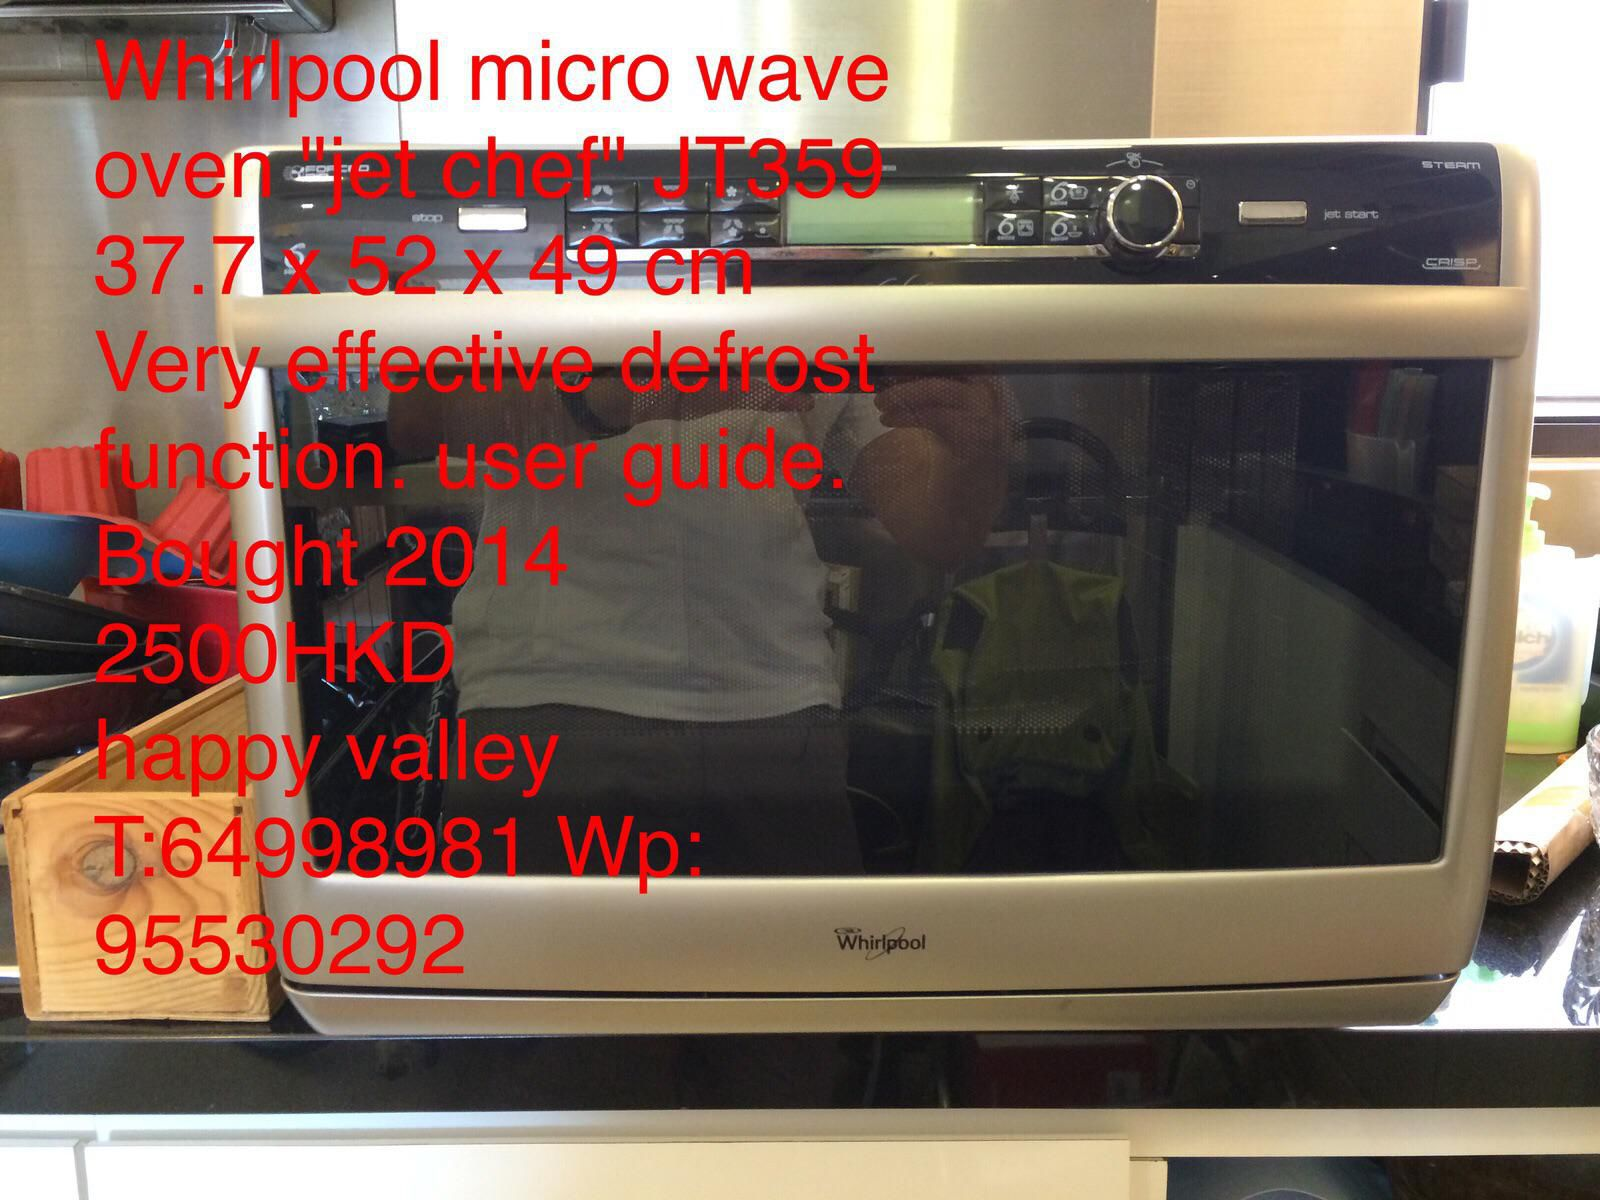 All-in-1 microwave oven Whirlpool JT 369